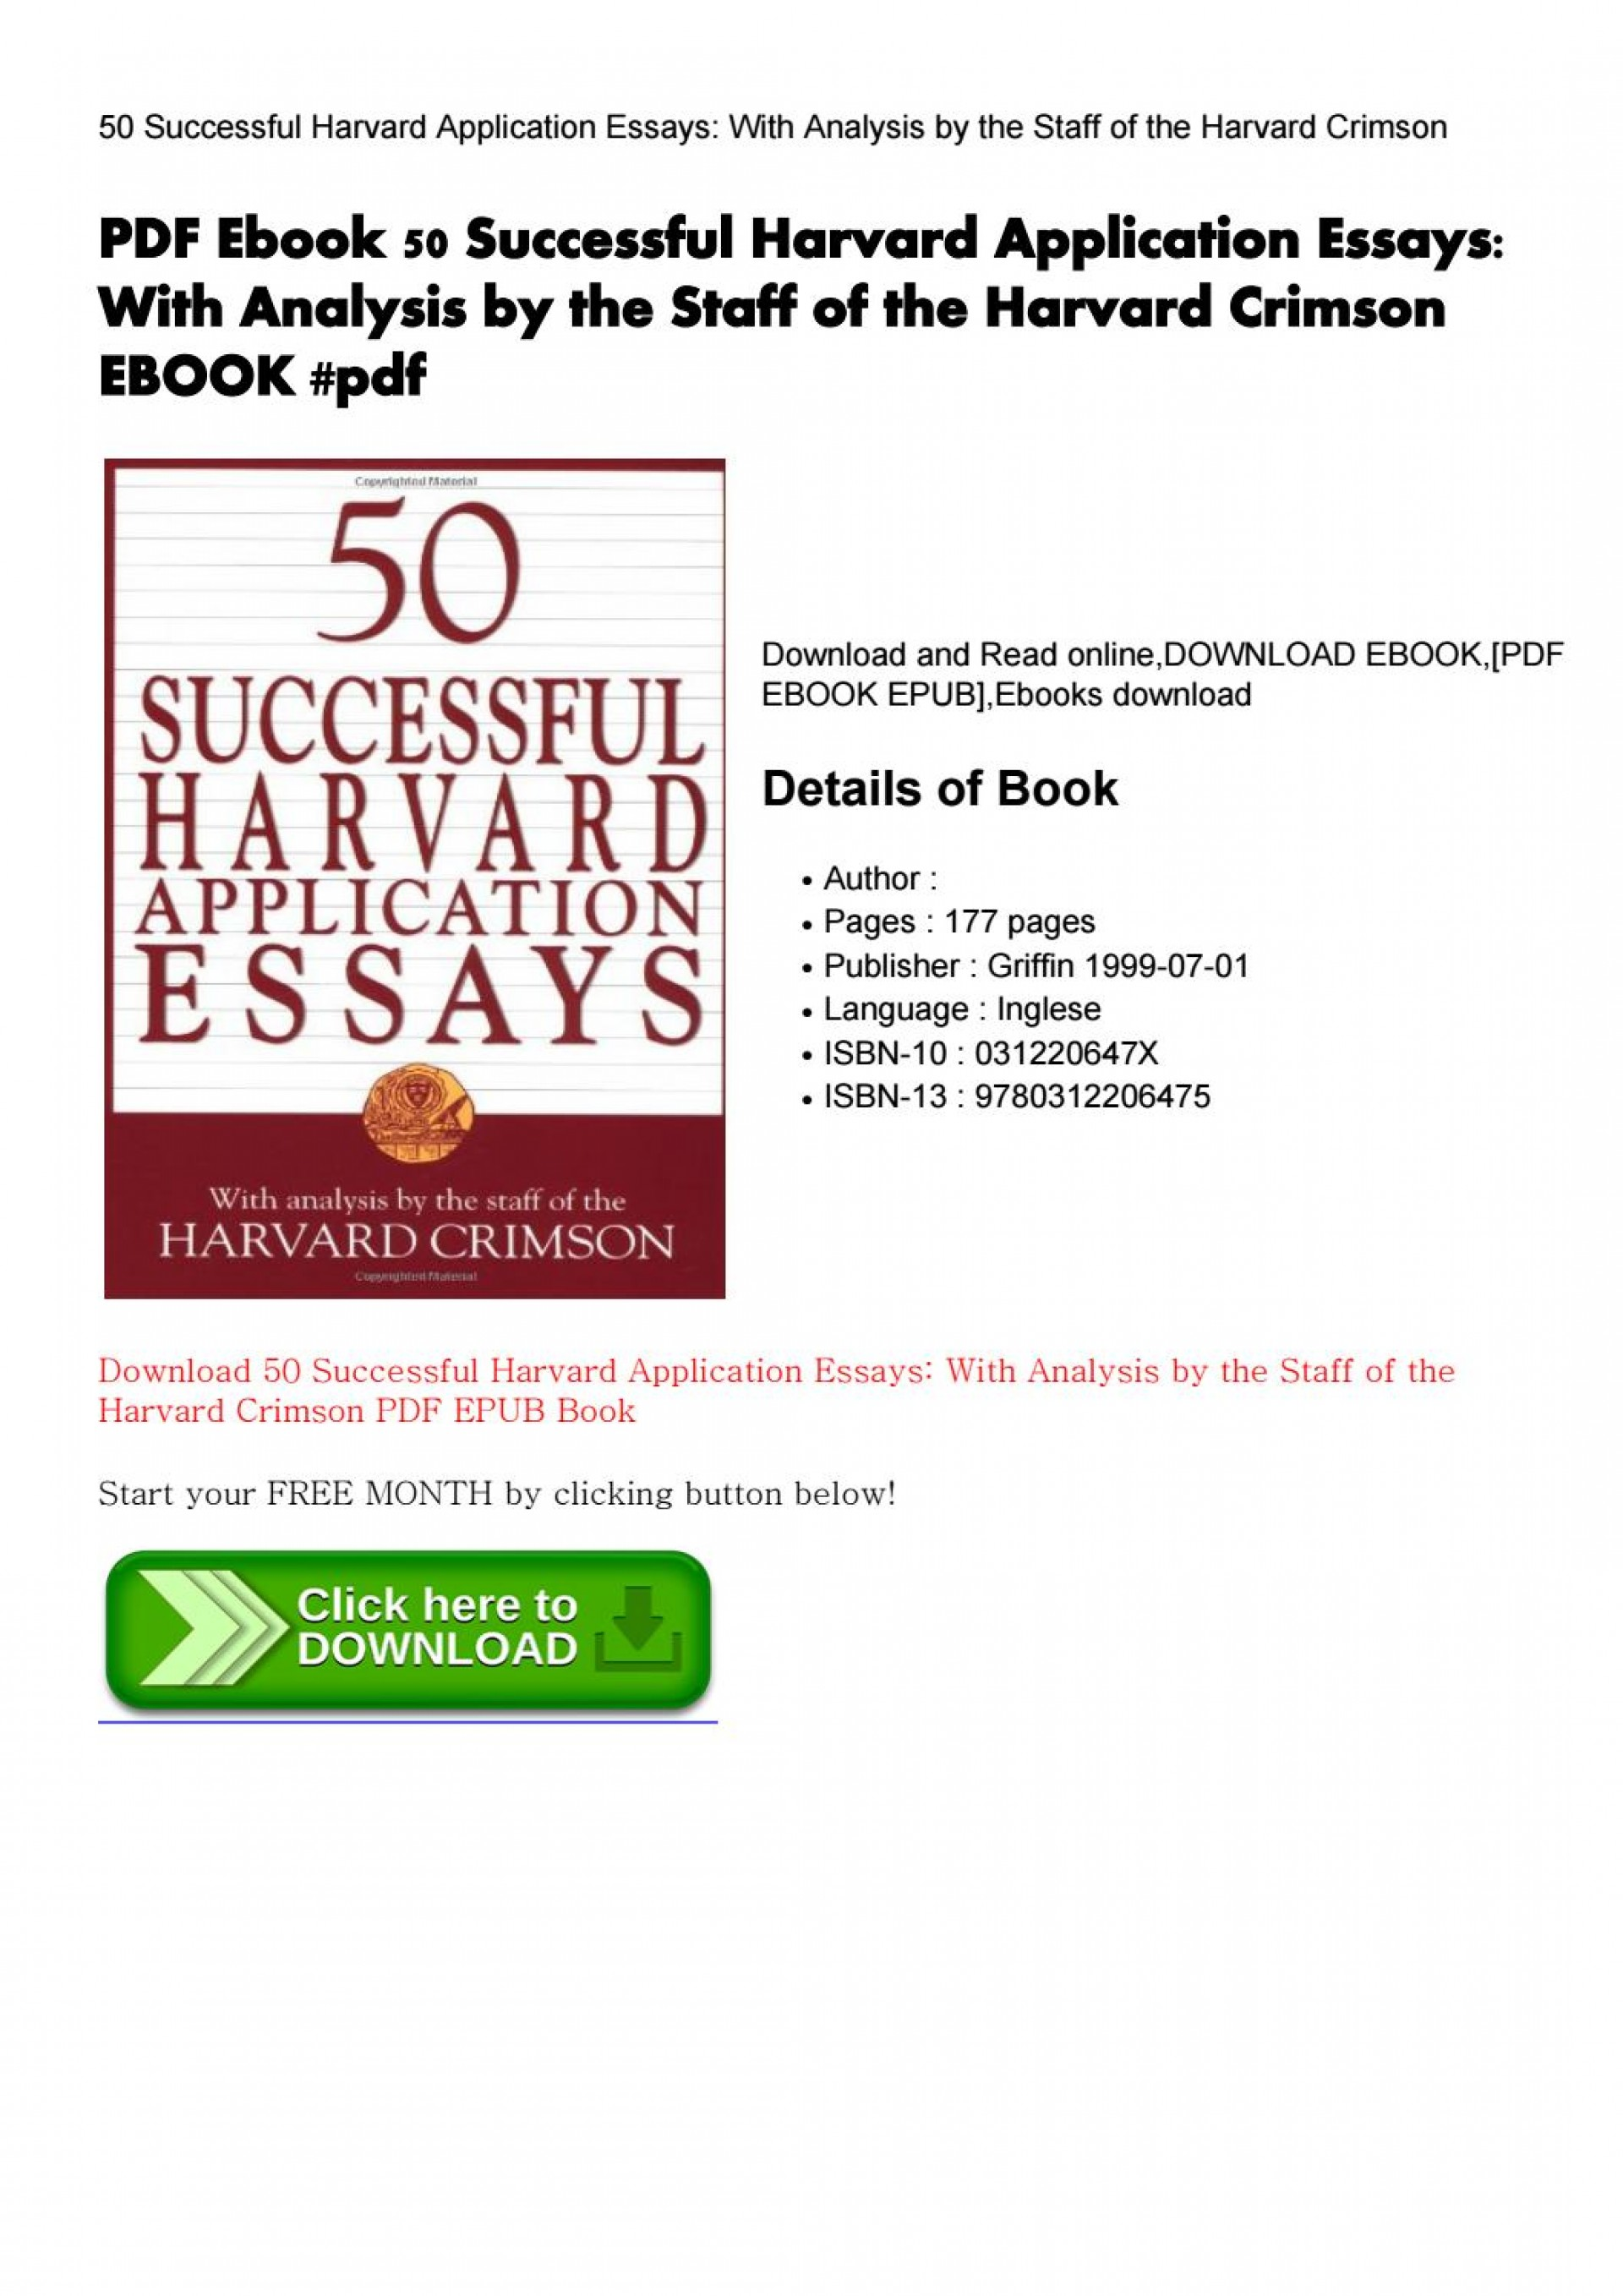 001 Successful Harvard Application Essays Pdf Page 1 Essay Impressive 50 Free 4th Edition Download 1920